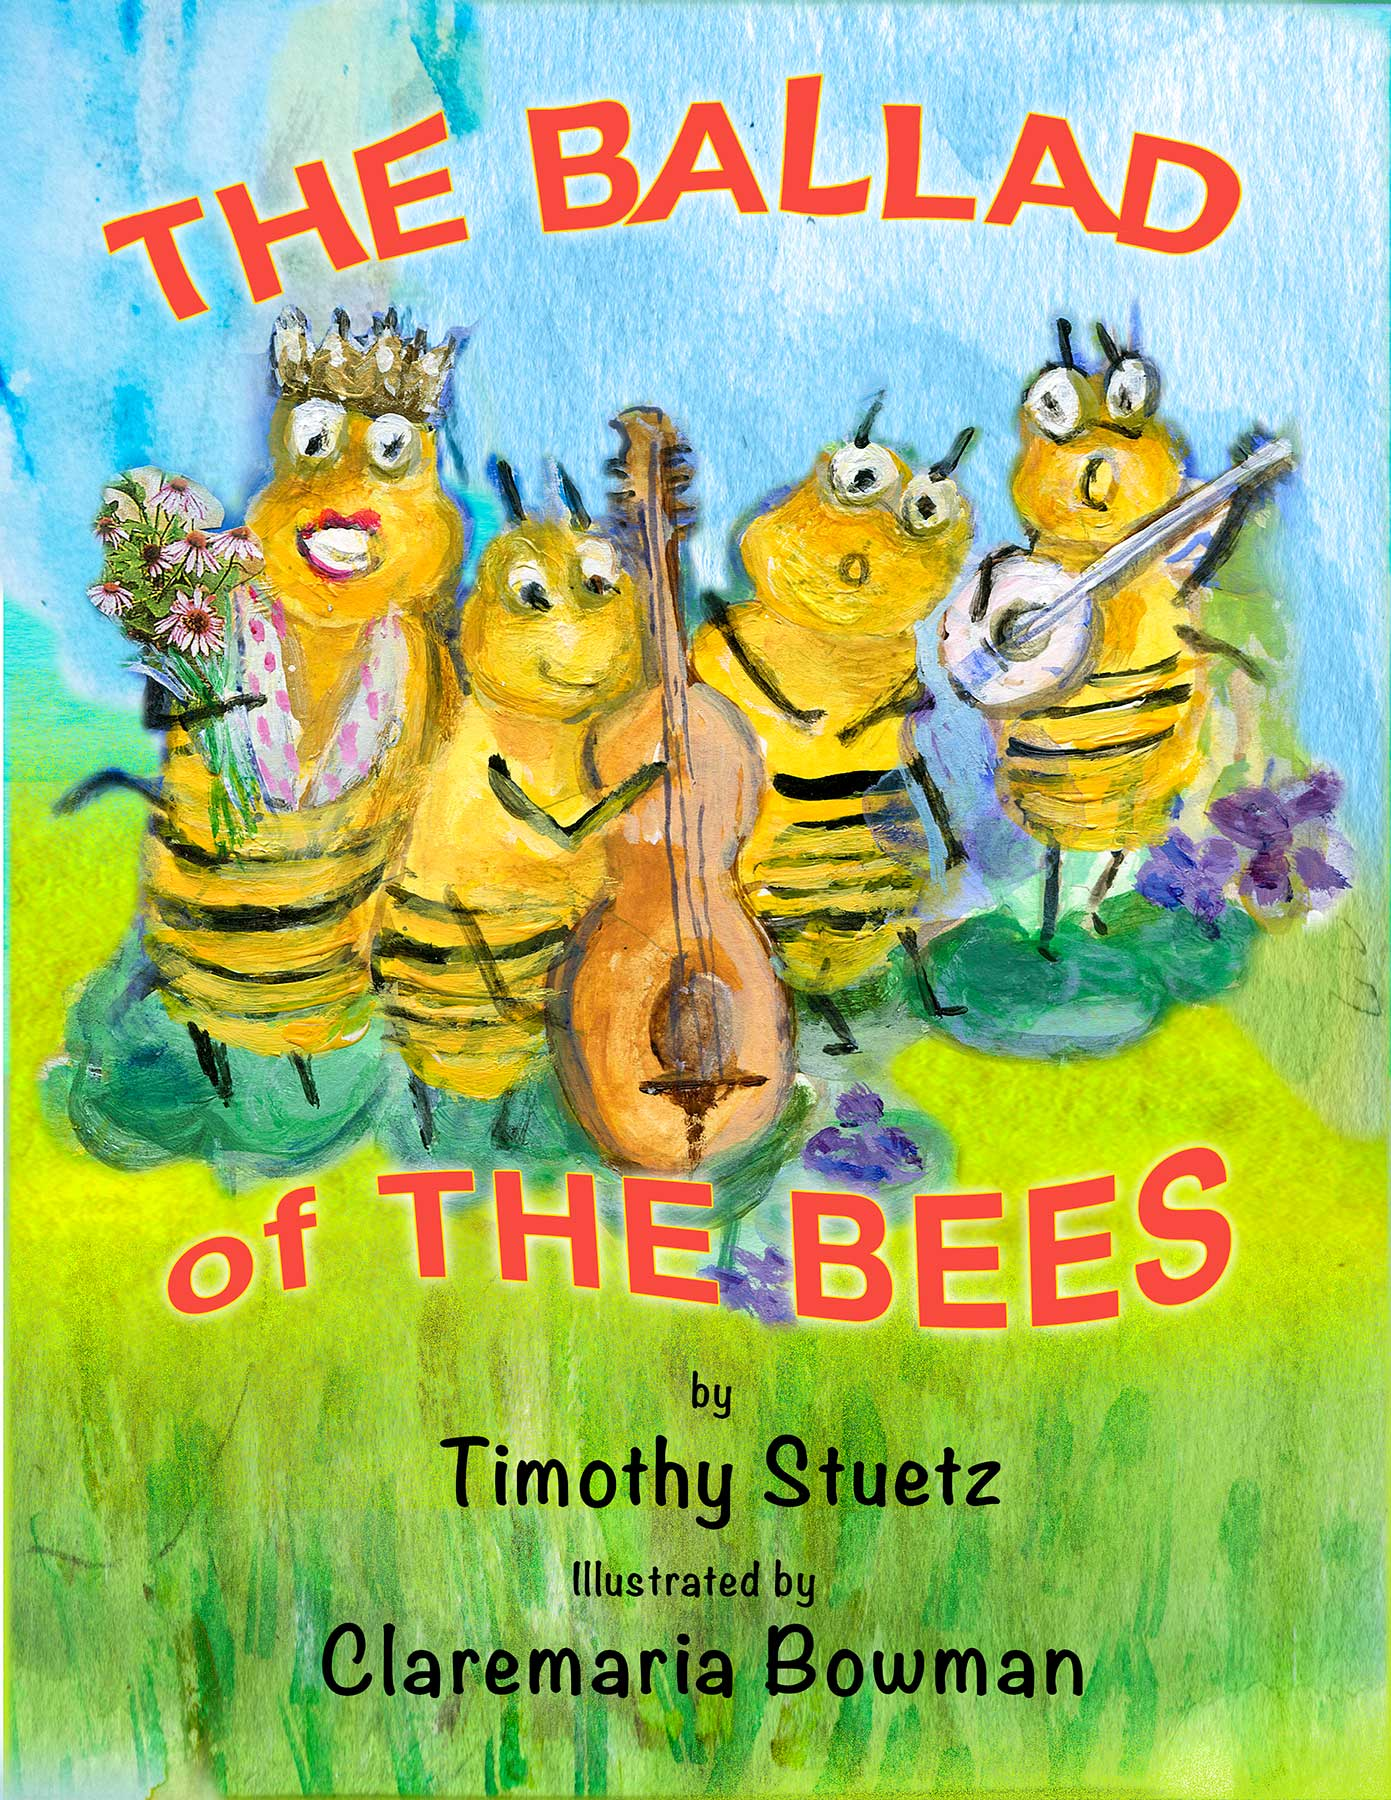 The Ballad of The Bees Fully Illustrated Storybook